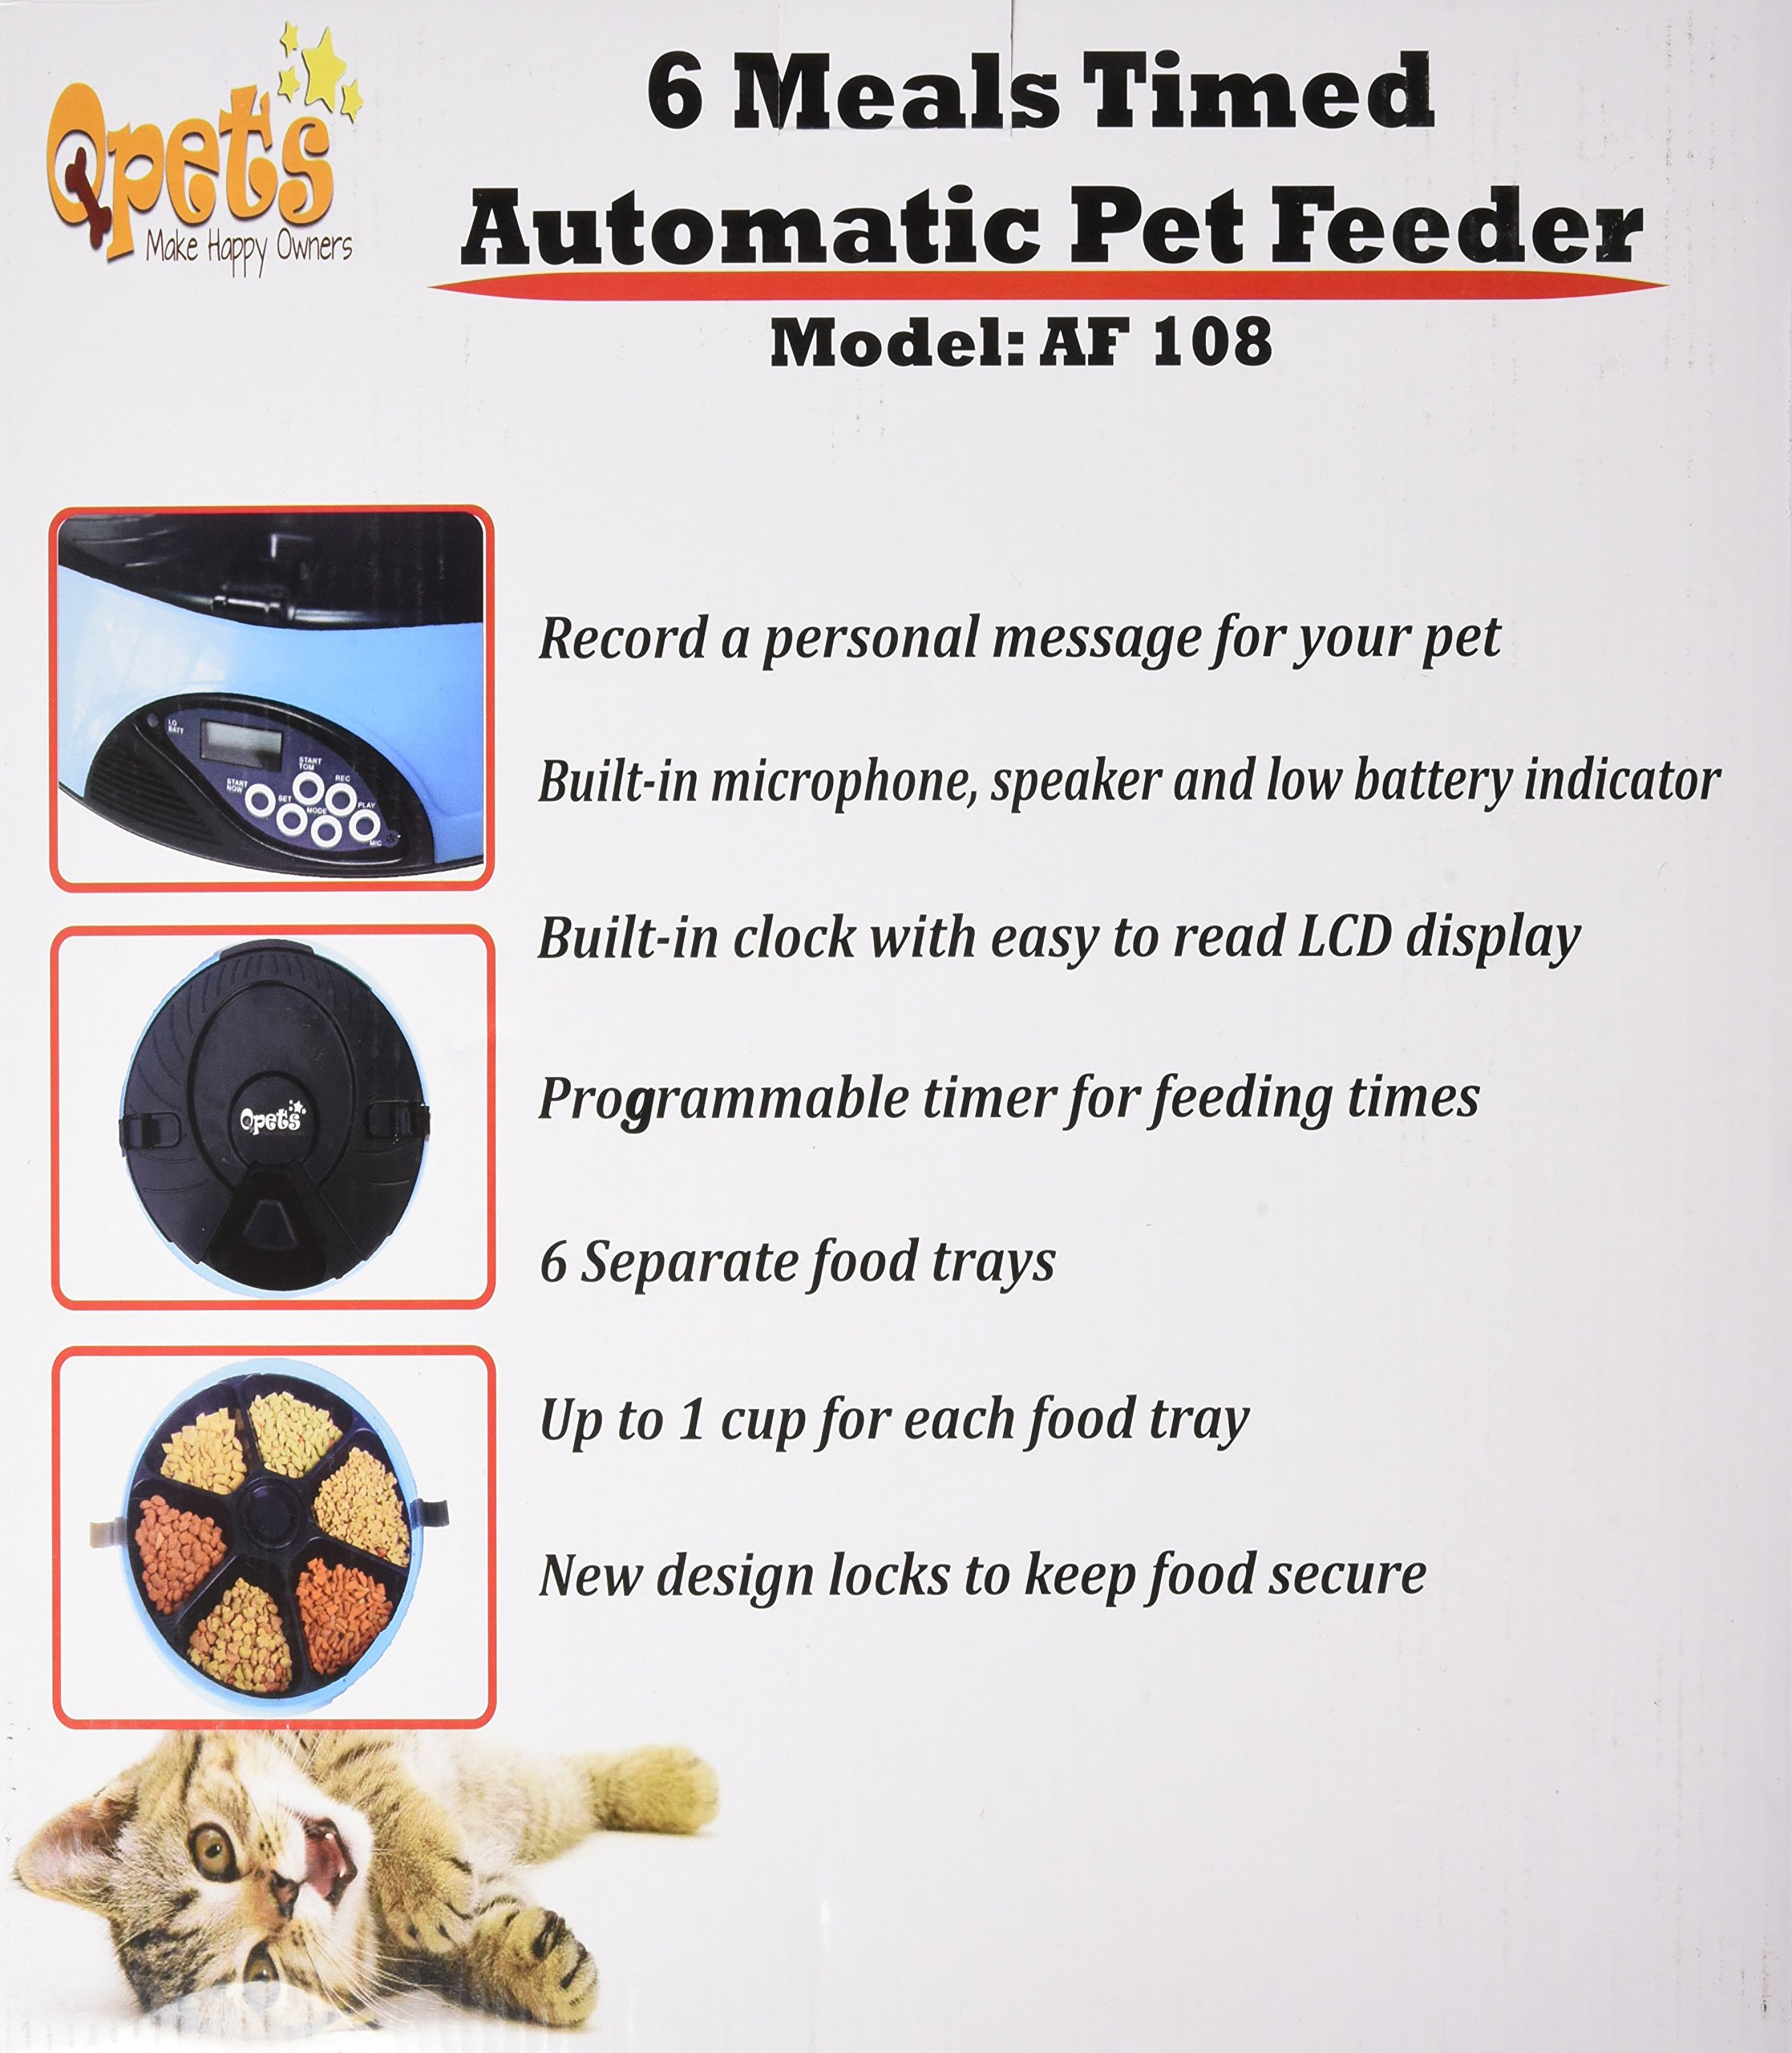 pcr in reviews automatic food surefeed microchip best rated dog customer pet feeders feeder timed wet helpful